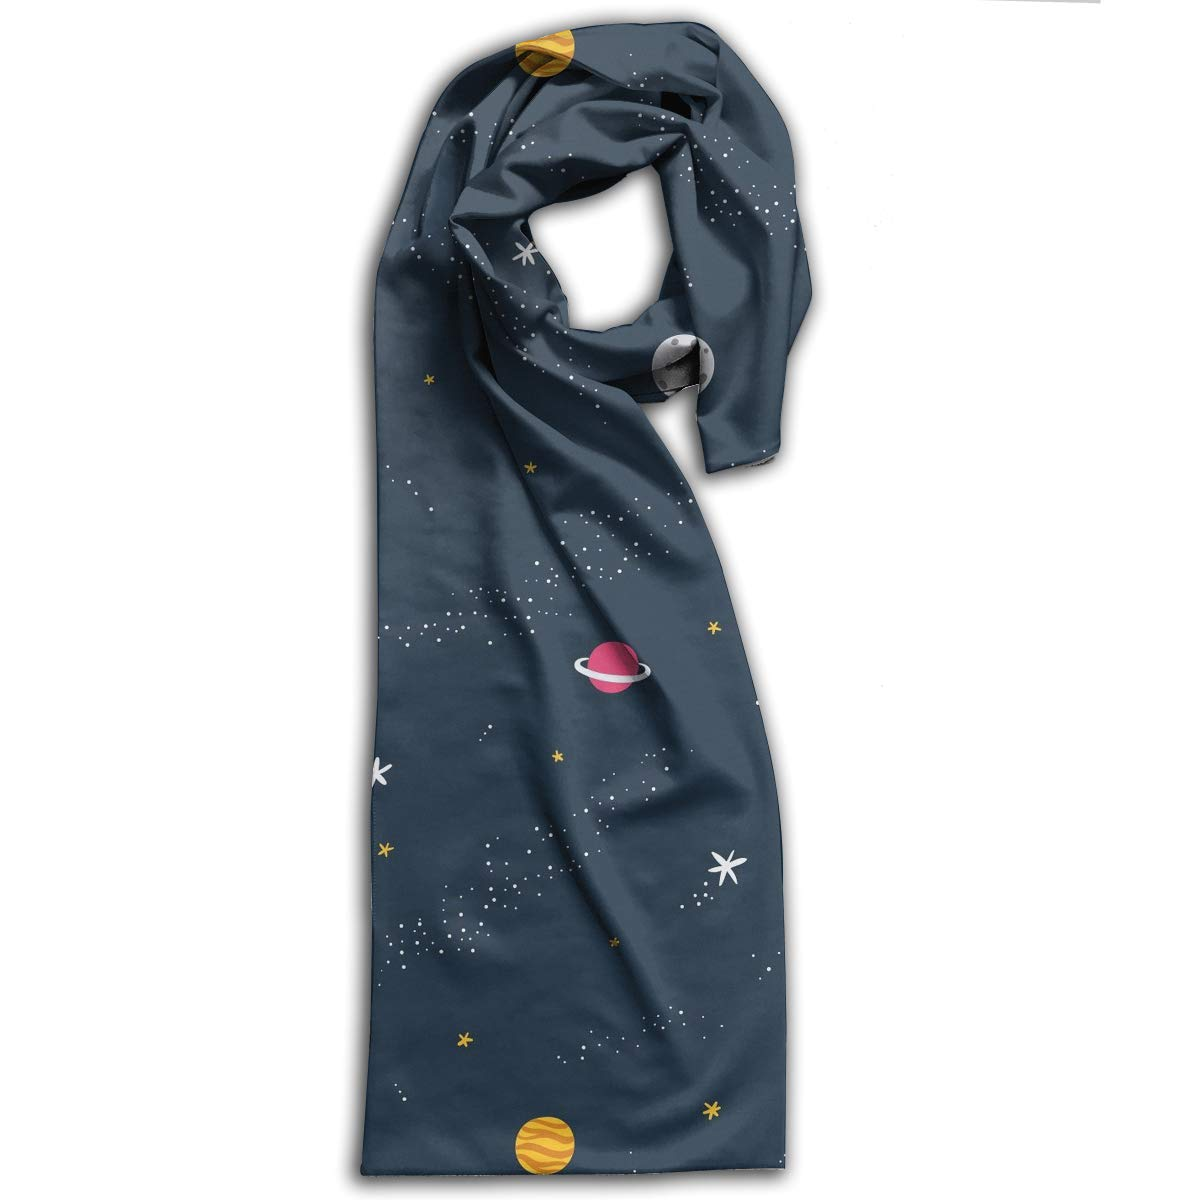 TDynasty Universe Cosmic Planet Warm Shawls Scarves Printing Comfortable Scarf Shawl Winter Scarf Warm Soft Multi-Purpose for Adult Women Gifts